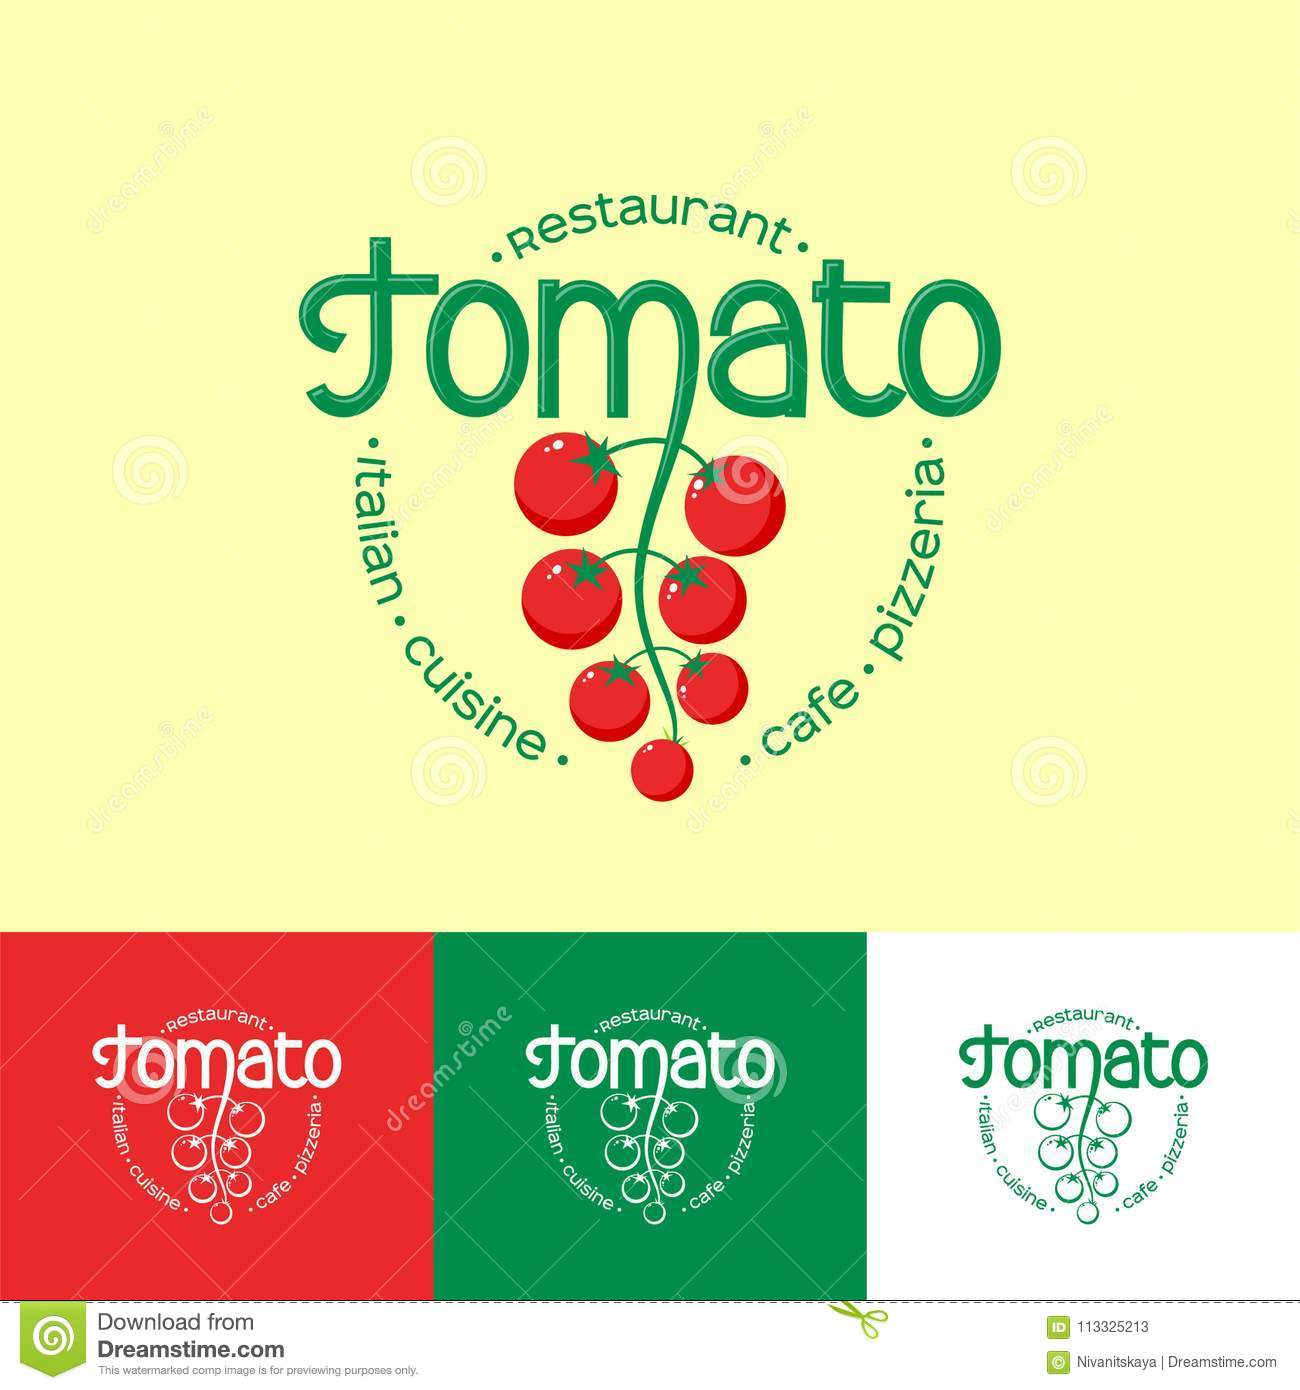 Tomato Logo Italian Cuisine Restaurant Logo Identity Pizzeria Or Cafe Emblem Letters And Cherry Tomatoes Stock Vector Illustration Of Nature Letter 113325213